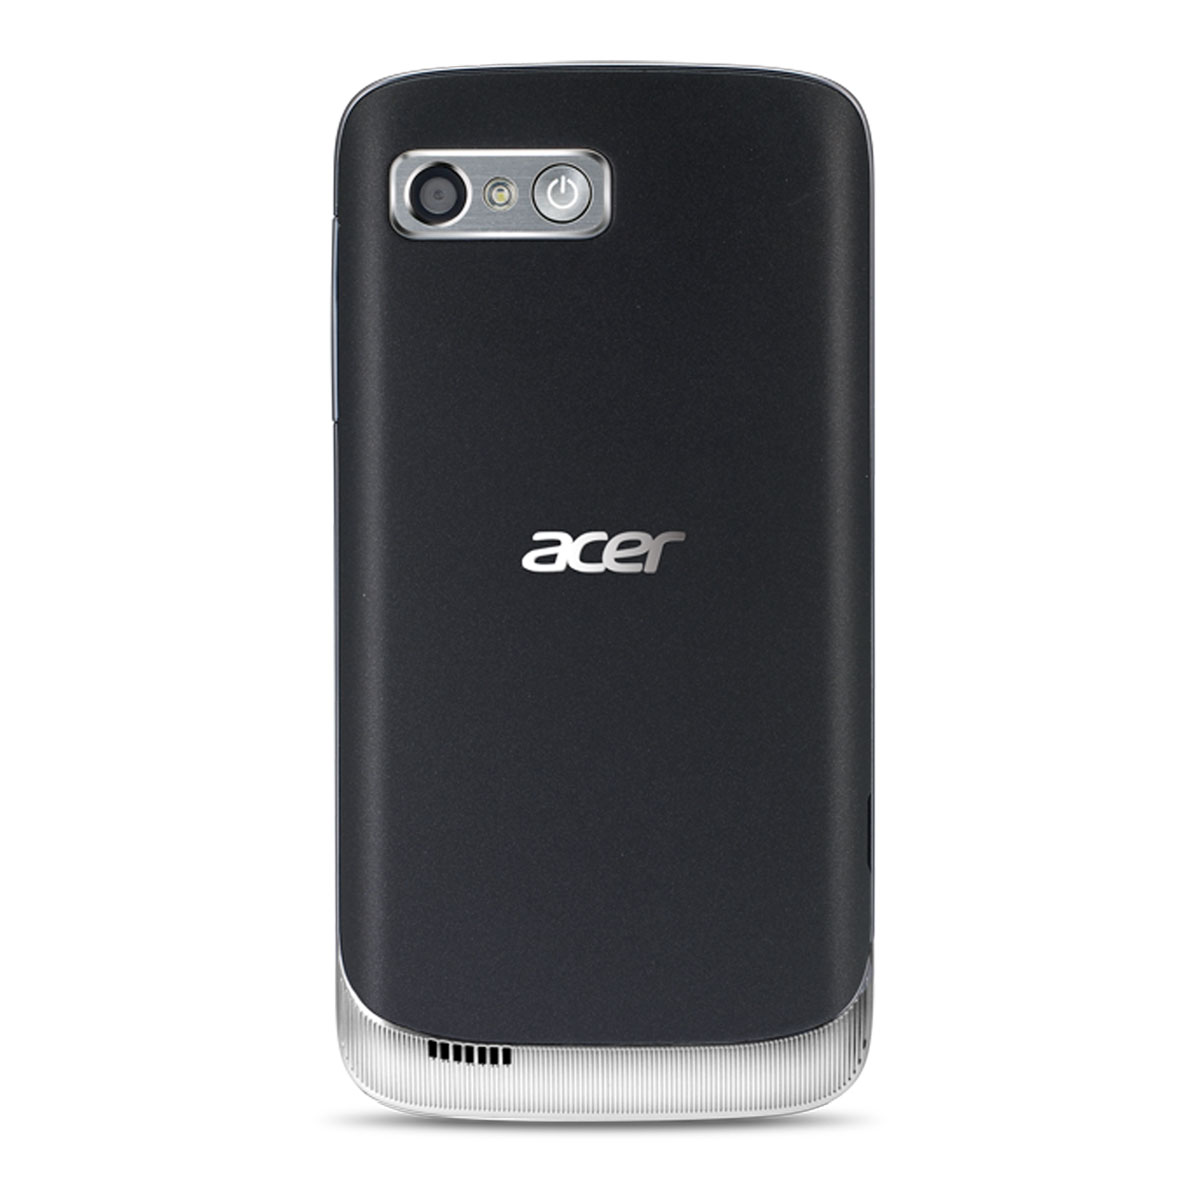 acer liquid gallant duo e350 deep black mobile smartphone acer sur ldlc. Black Bedroom Furniture Sets. Home Design Ideas